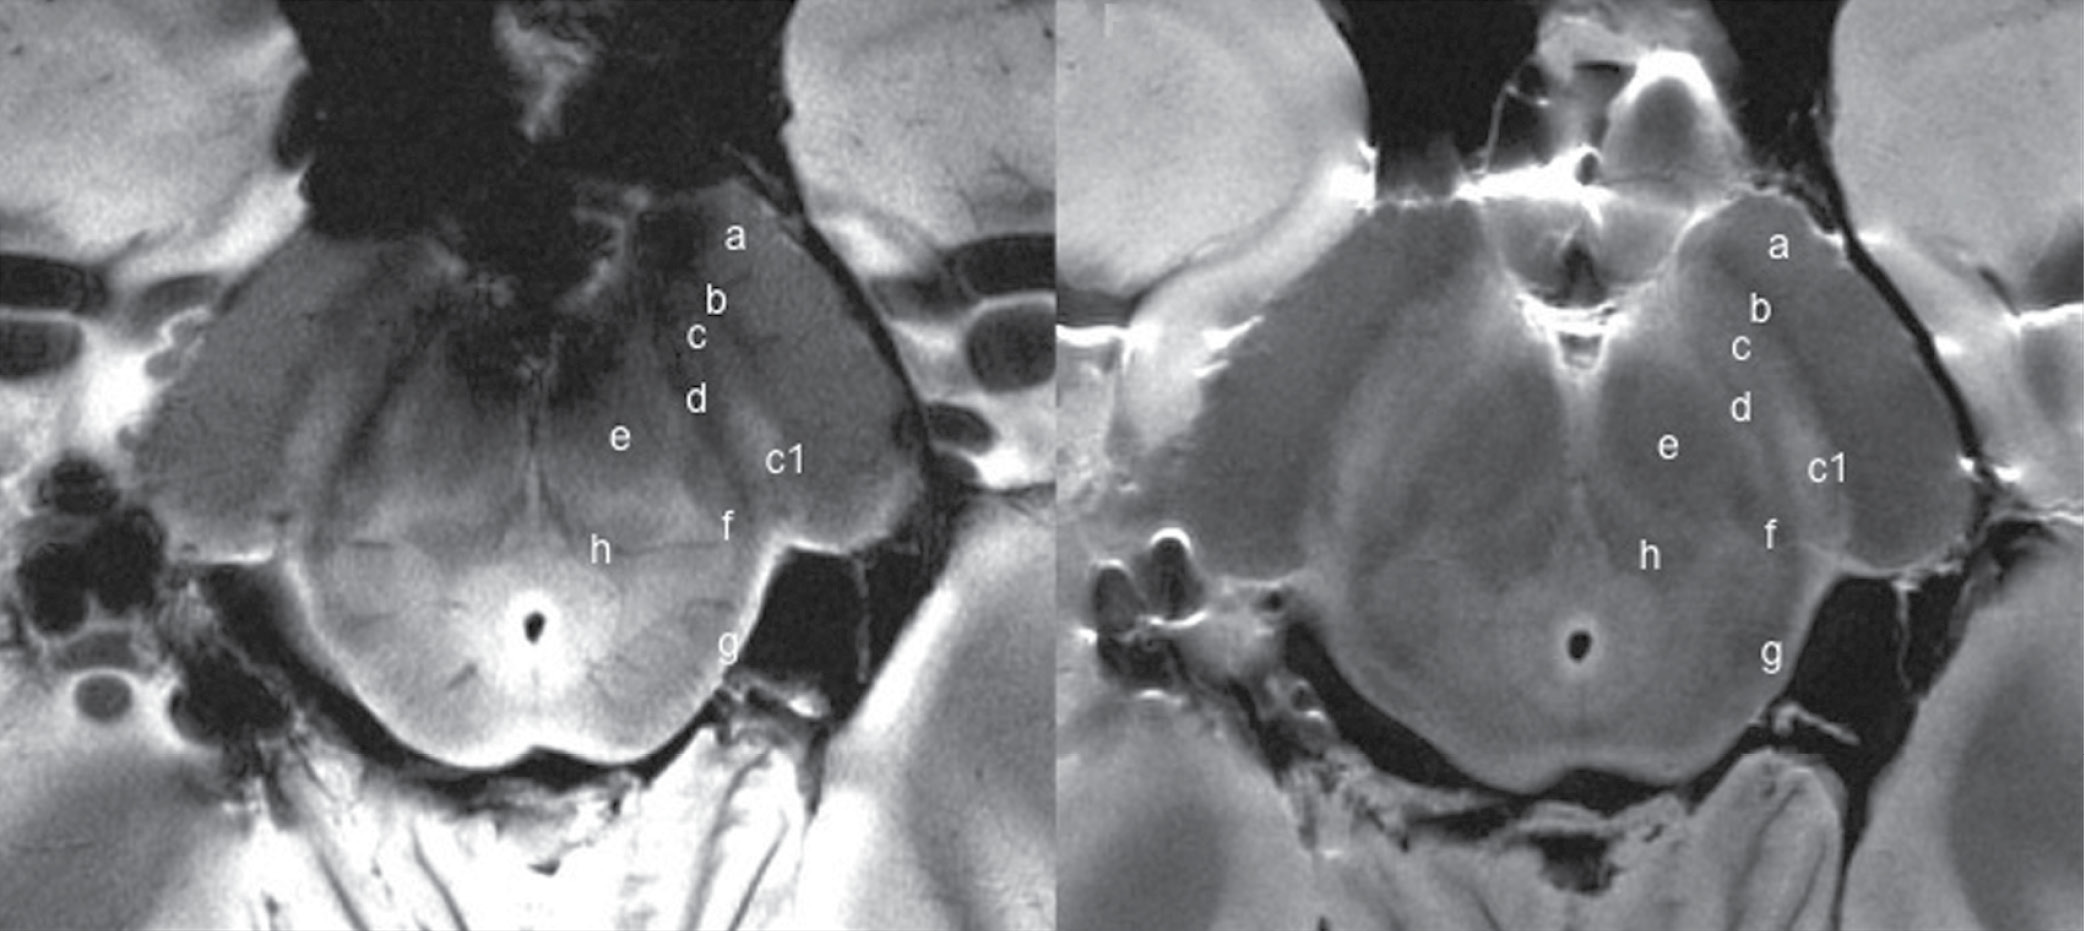 Transverse gadolinium-enhanced T1-weighted MR images obtained superior to the carotid artery bifurcation